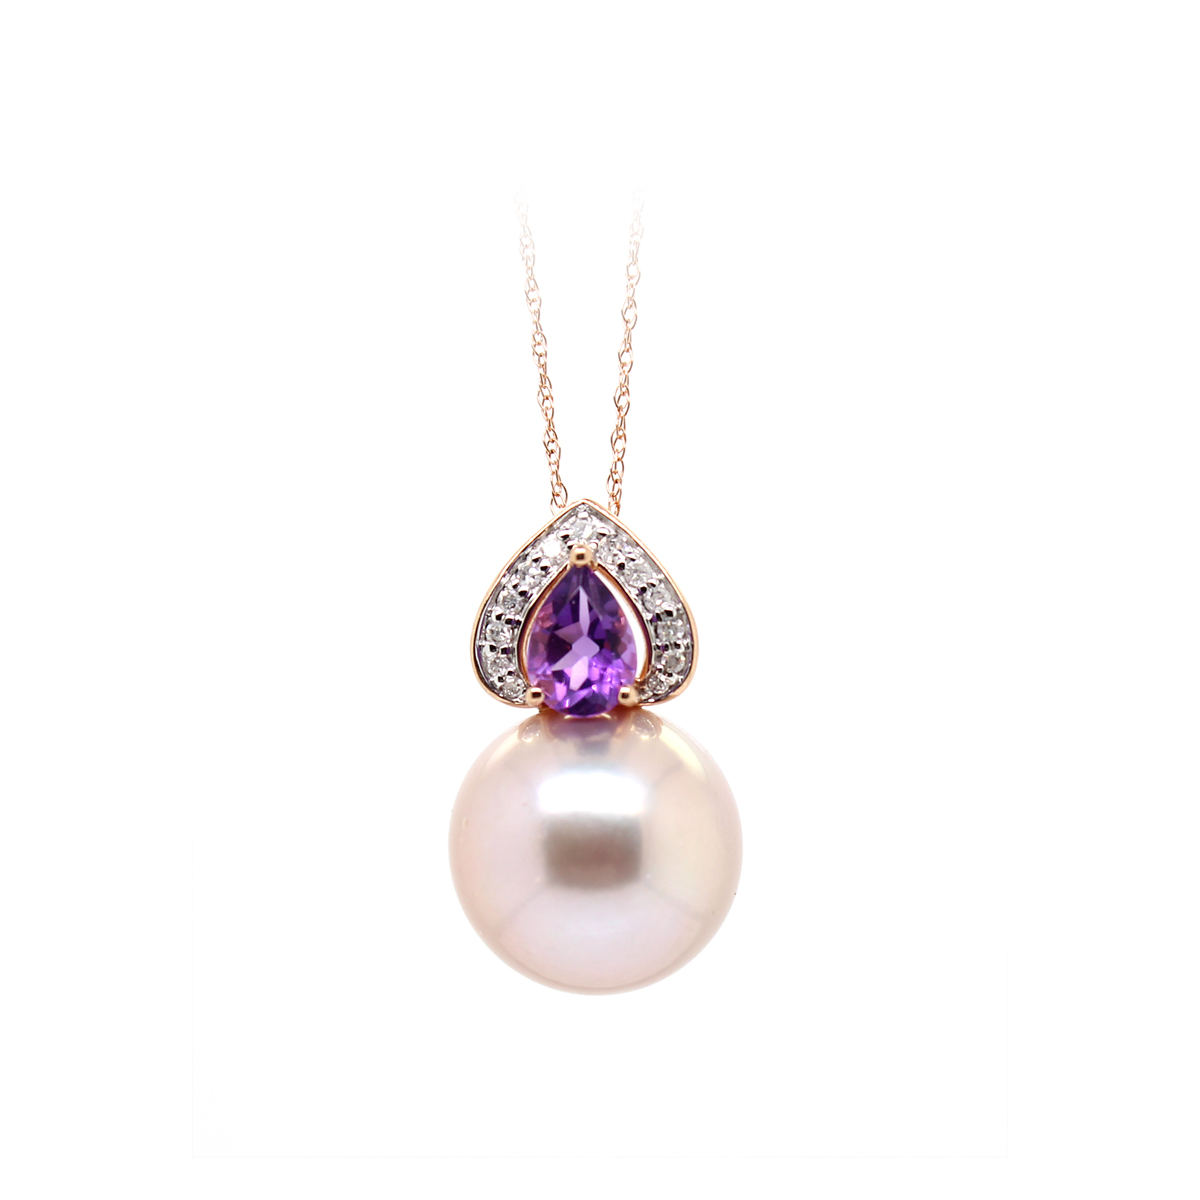 Vintage 14 Karat Rose Gold Amethyst, Diamond, and Lavender South Sea Pearl Pendant Necklace